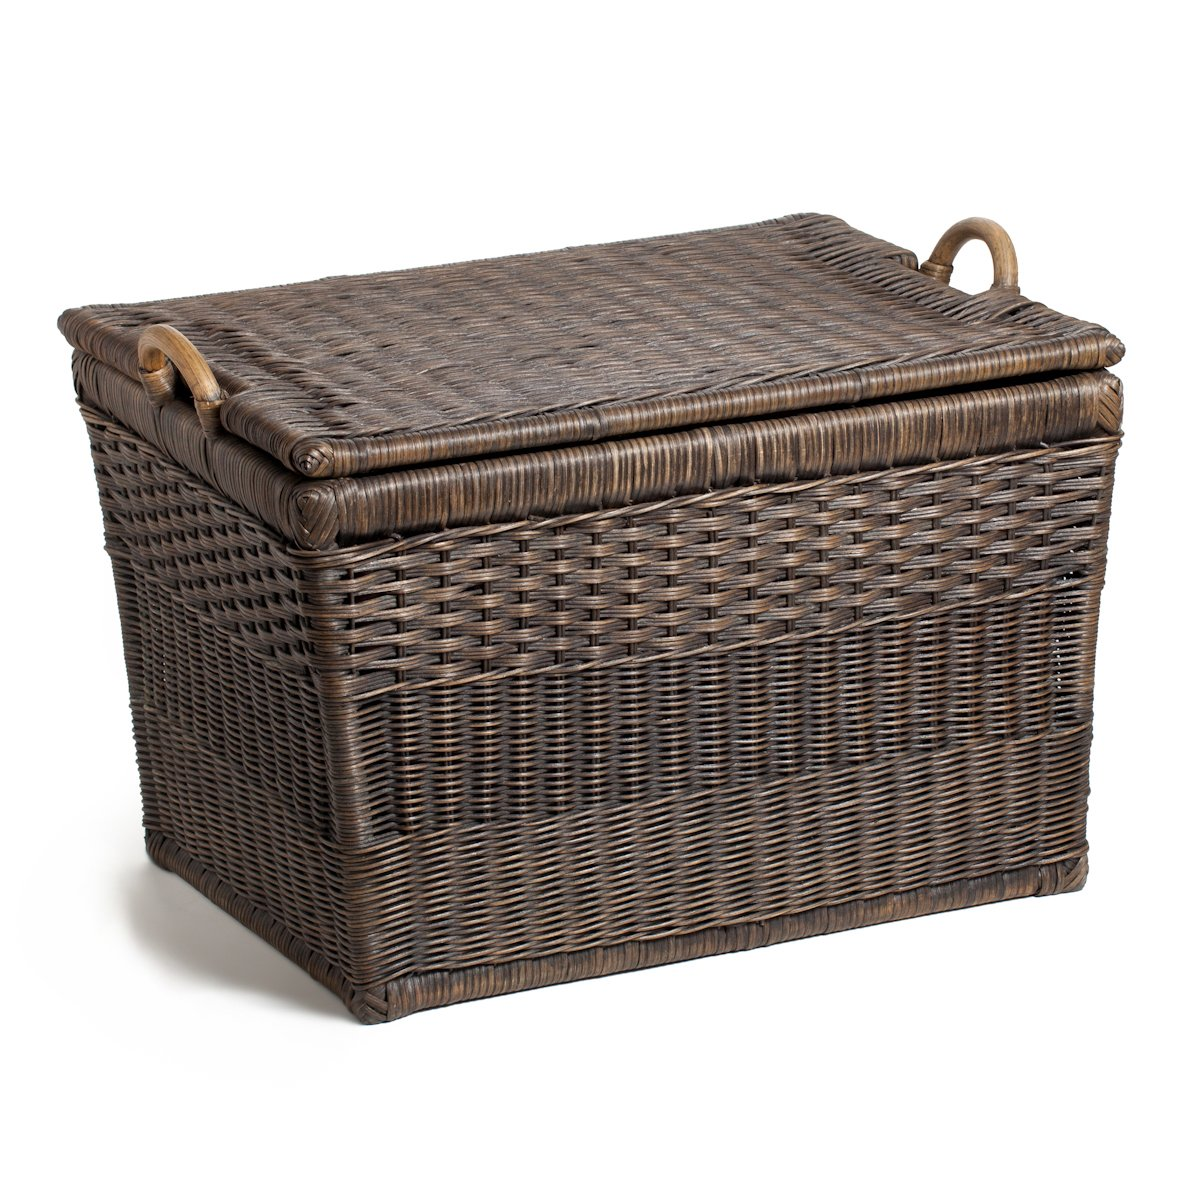 "farmhouse decorating guide tip Farmhouse basket  This elegant lidded storage basket could really be called a covered storage trunk with a lift-off lid and has a generous dimension great for farmhouse bedding or spare linen storage. The exterior features three different styles of basket weave over a sturdy pole frame and durable wood bottom. Can be stacked or used individually. Covered storage containers are handcrafted by artisans in Indonesia and are made of natural rattan. Each covered storage box includes one removable fabric liner. Large Antique Walnut Brown Finish (24.5""L x 18""W x 17.5""H)"